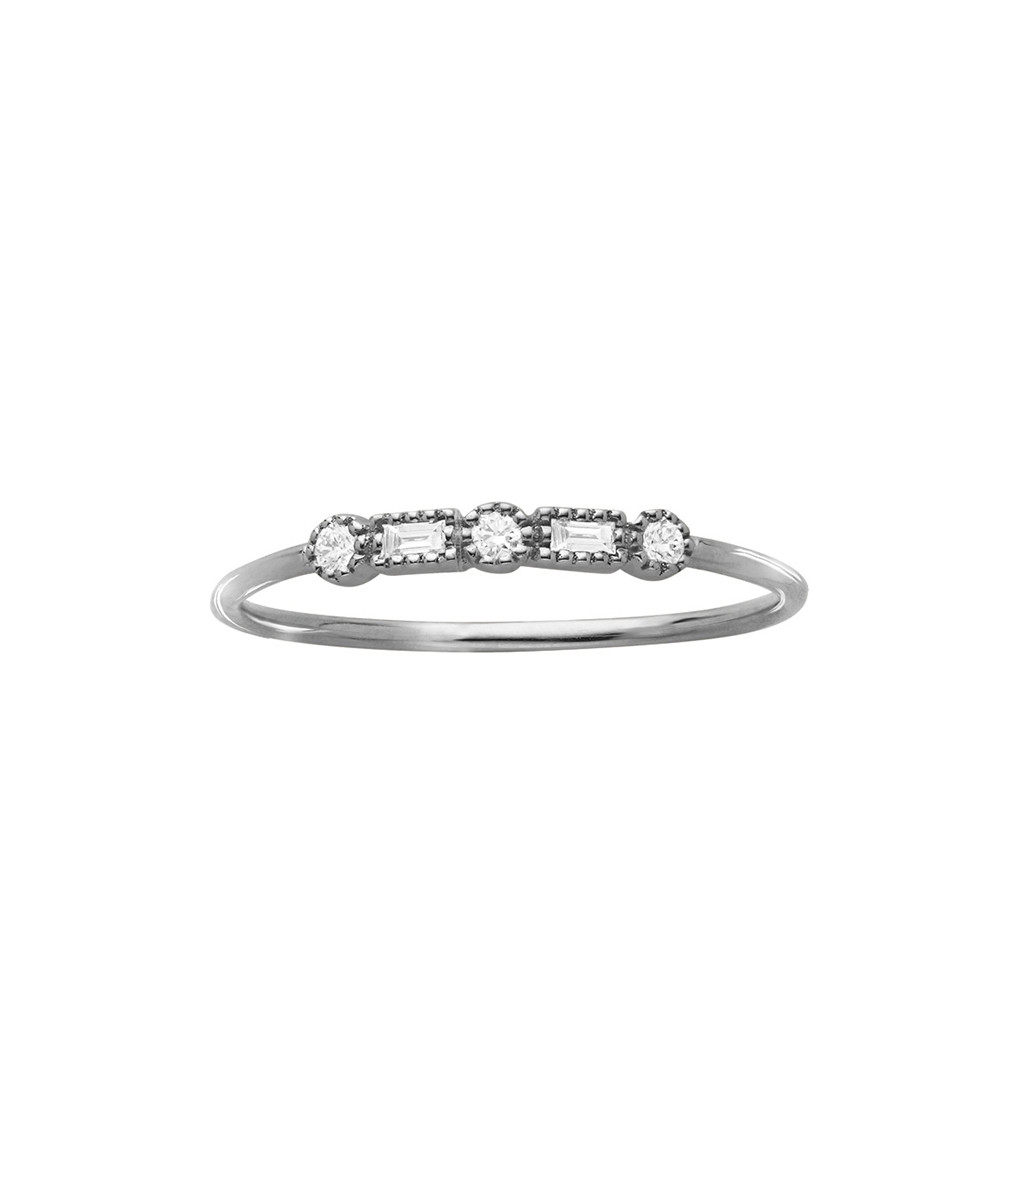 Bague Simple Serenity Diamants - STONE